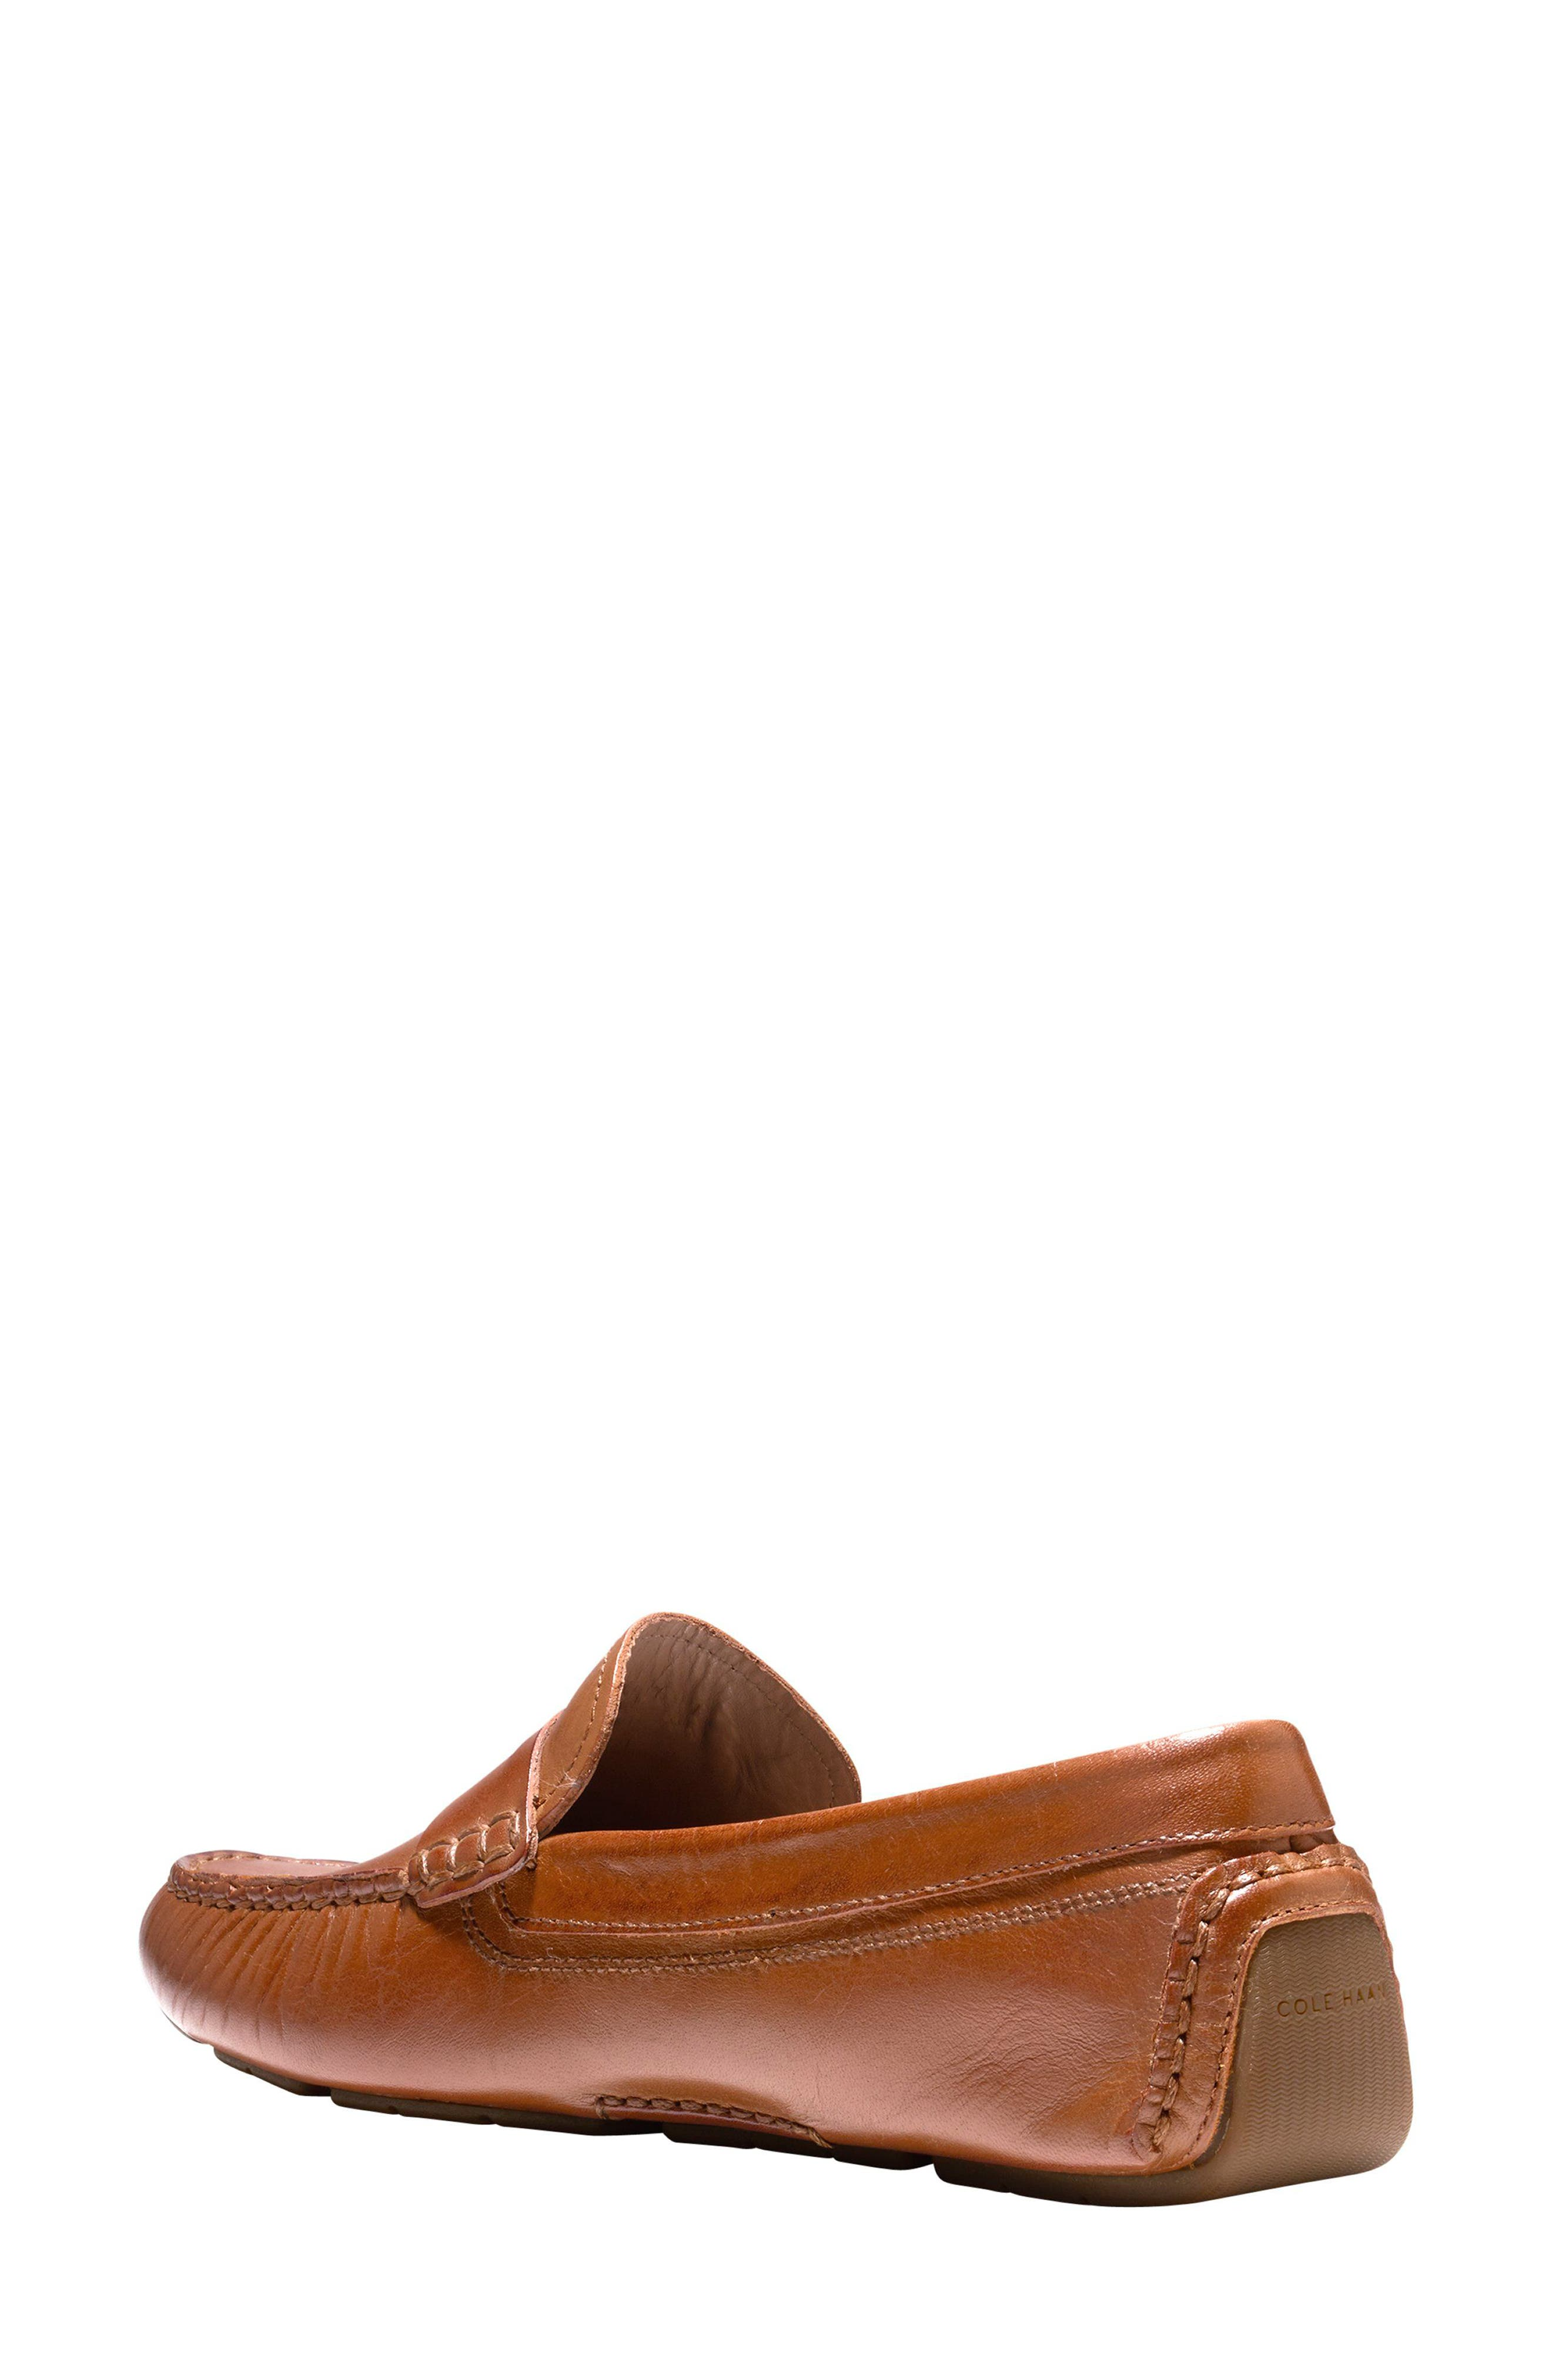 Alternate Image 2  - Cole Haan Rodeo Penny Driving Loafer (Women)